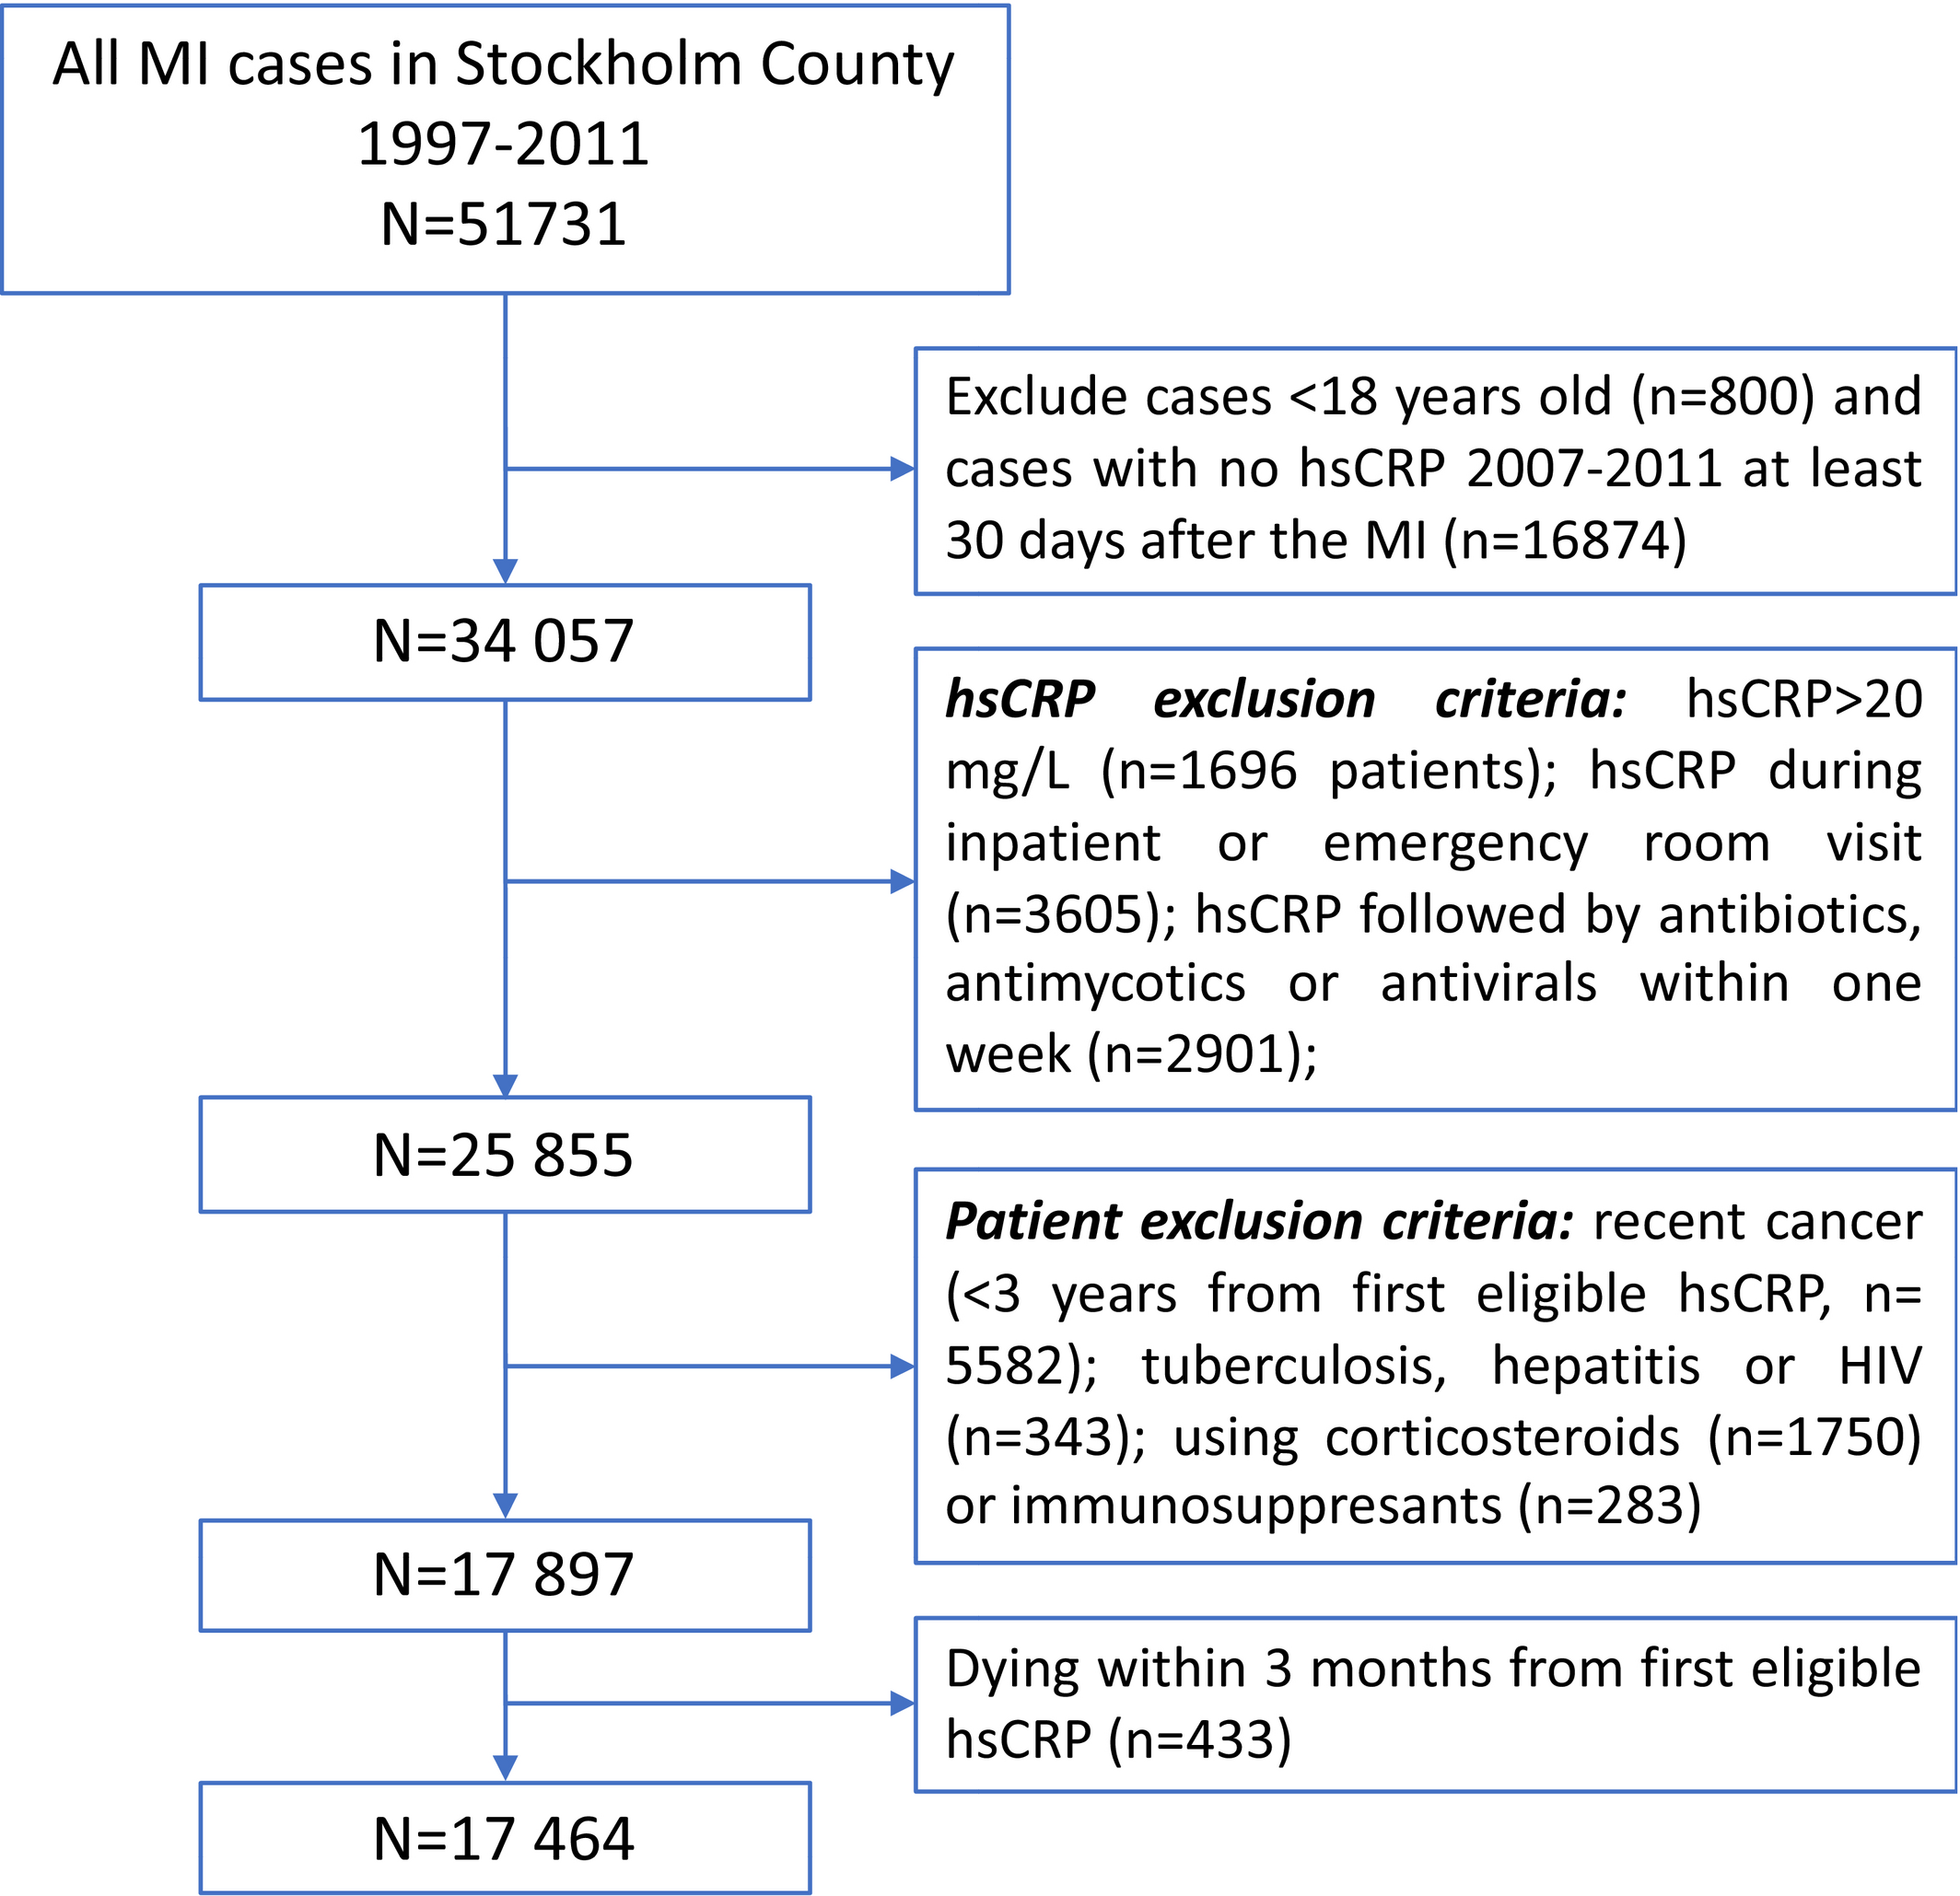 Hscrp Level And The Risk Of Death Or Recurrent Cardiovascular Events In Patients With Myocardial Infarction A Healthcare Based Study Journal Of The American Heart Association